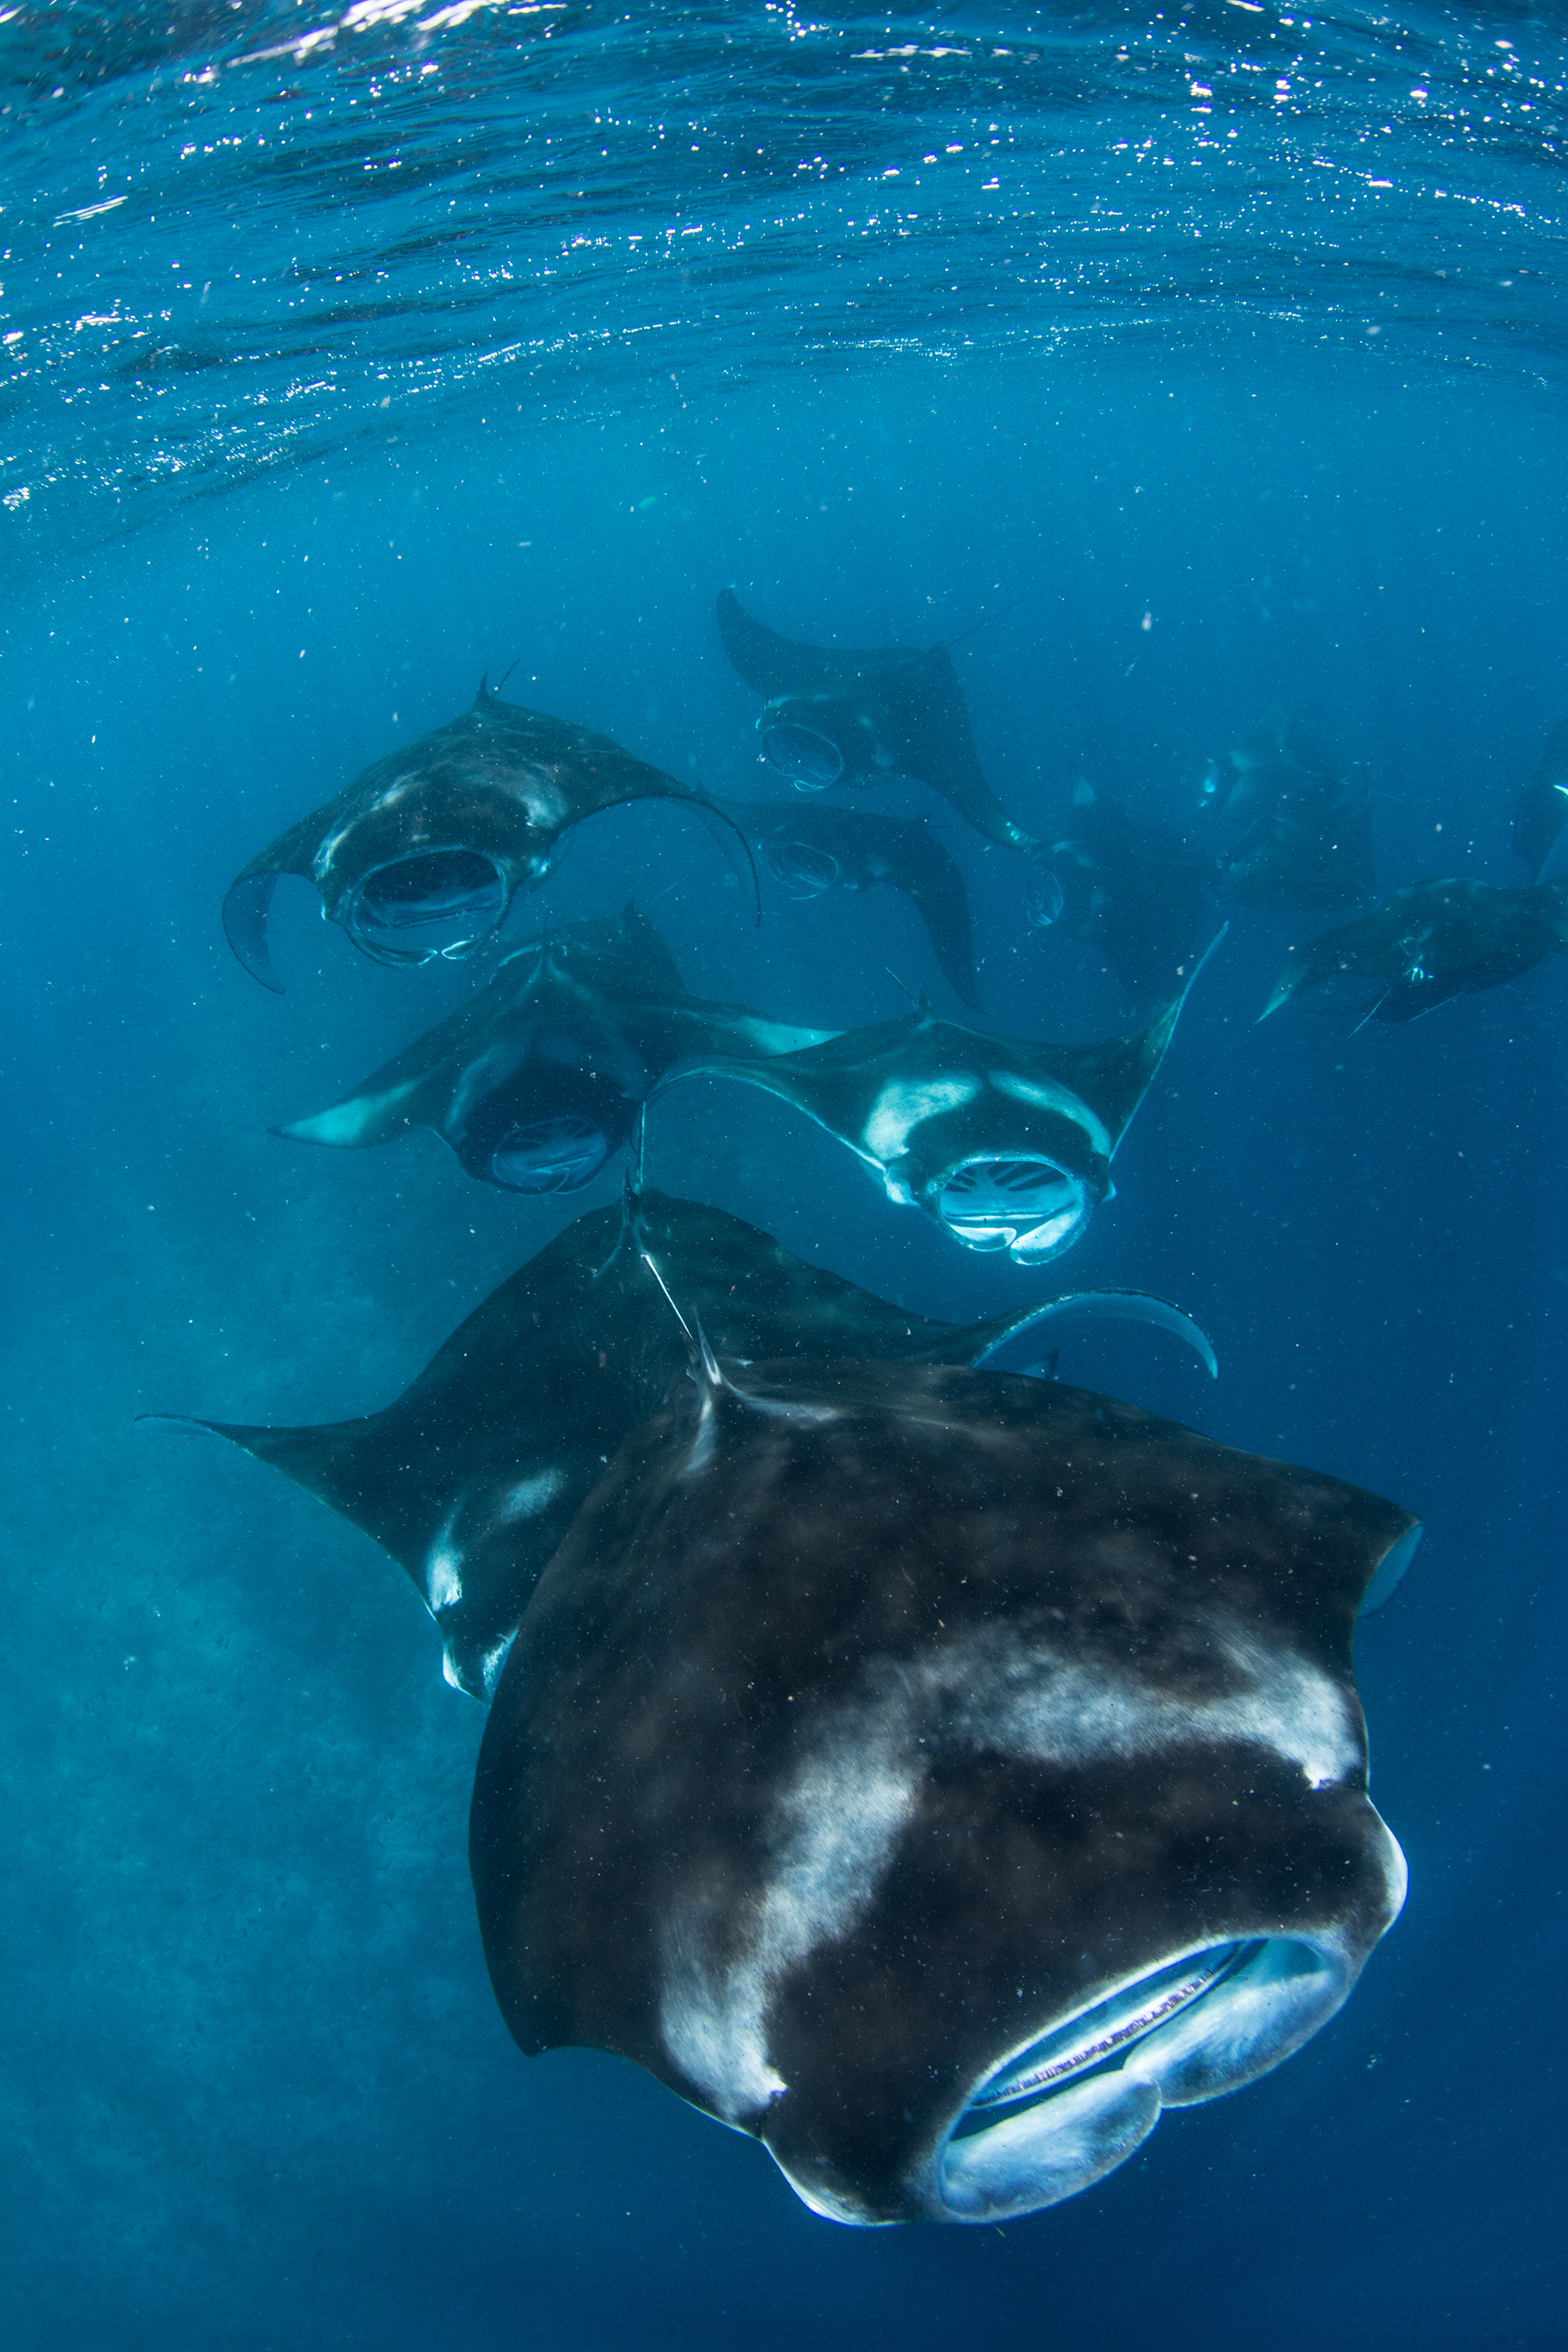 Mantas Mass Feeding in the Maldives Credit: Simon Hilbourne / Coral Reef Image Bank